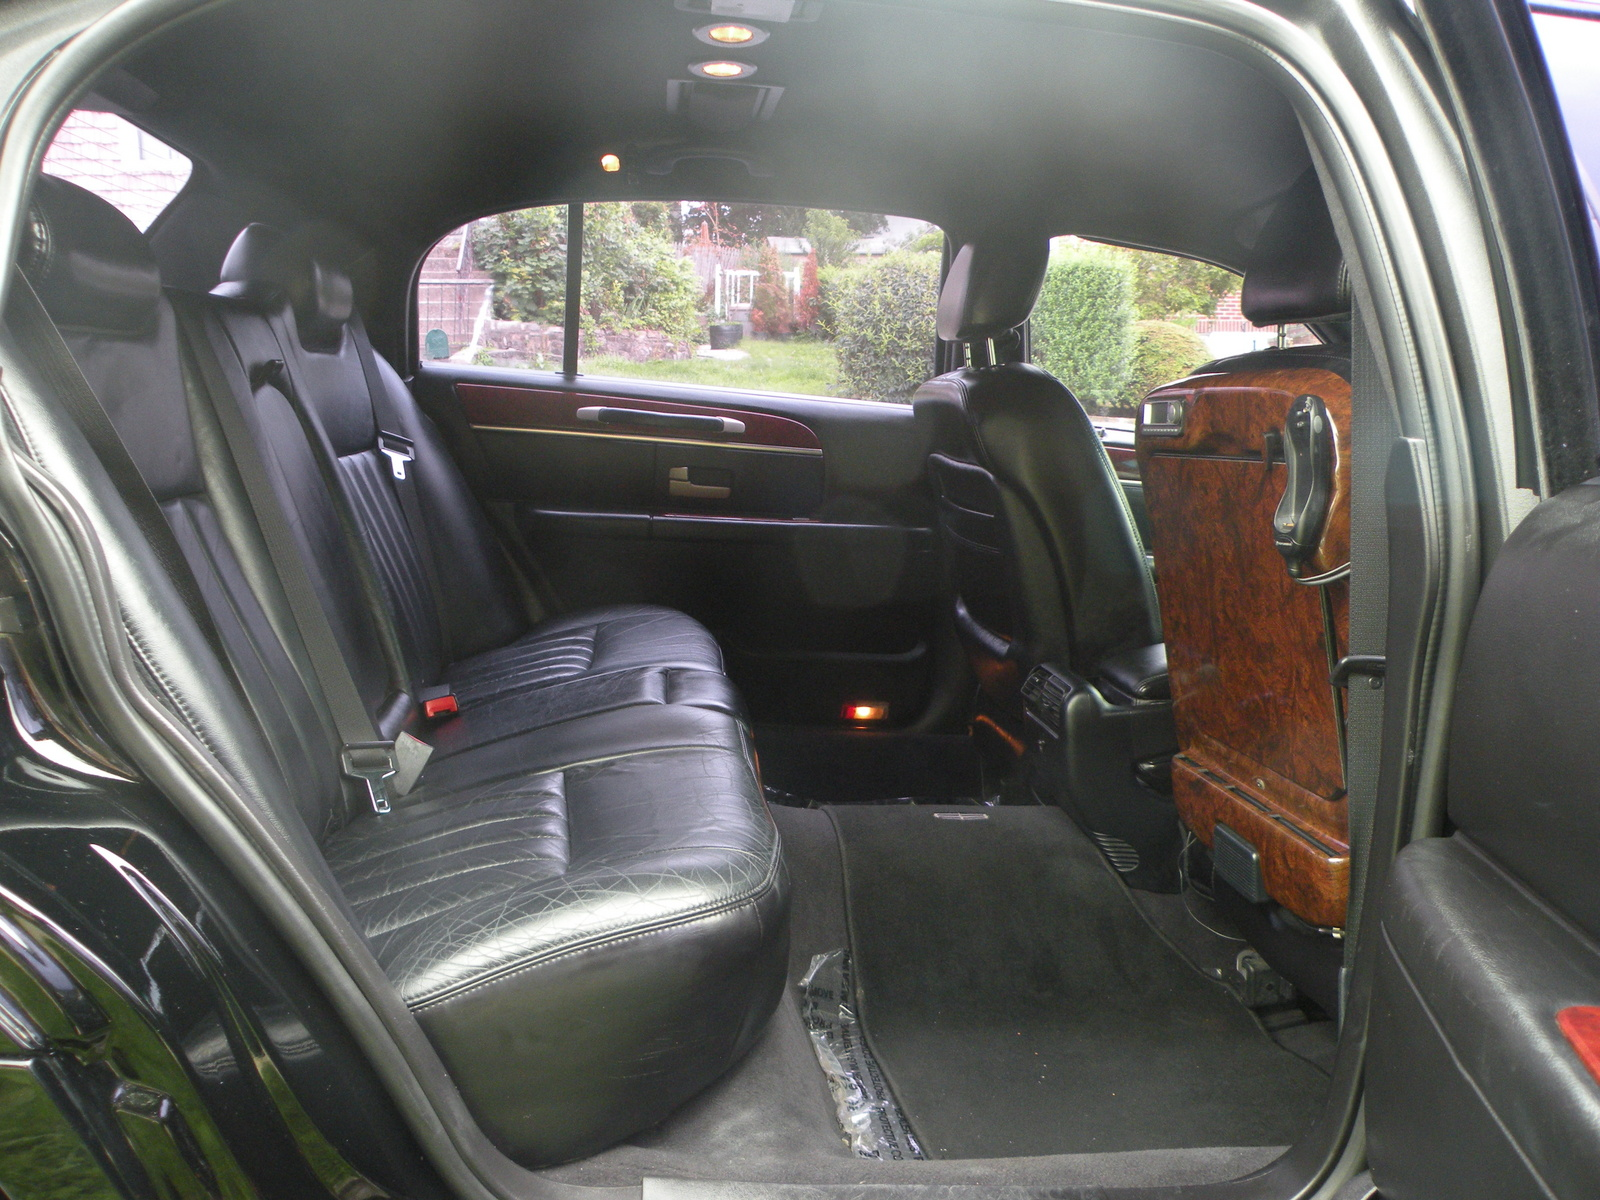 2014 lincoln town car interior picture of 2005 lincoln town. Black Bedroom Furniture Sets. Home Design Ideas